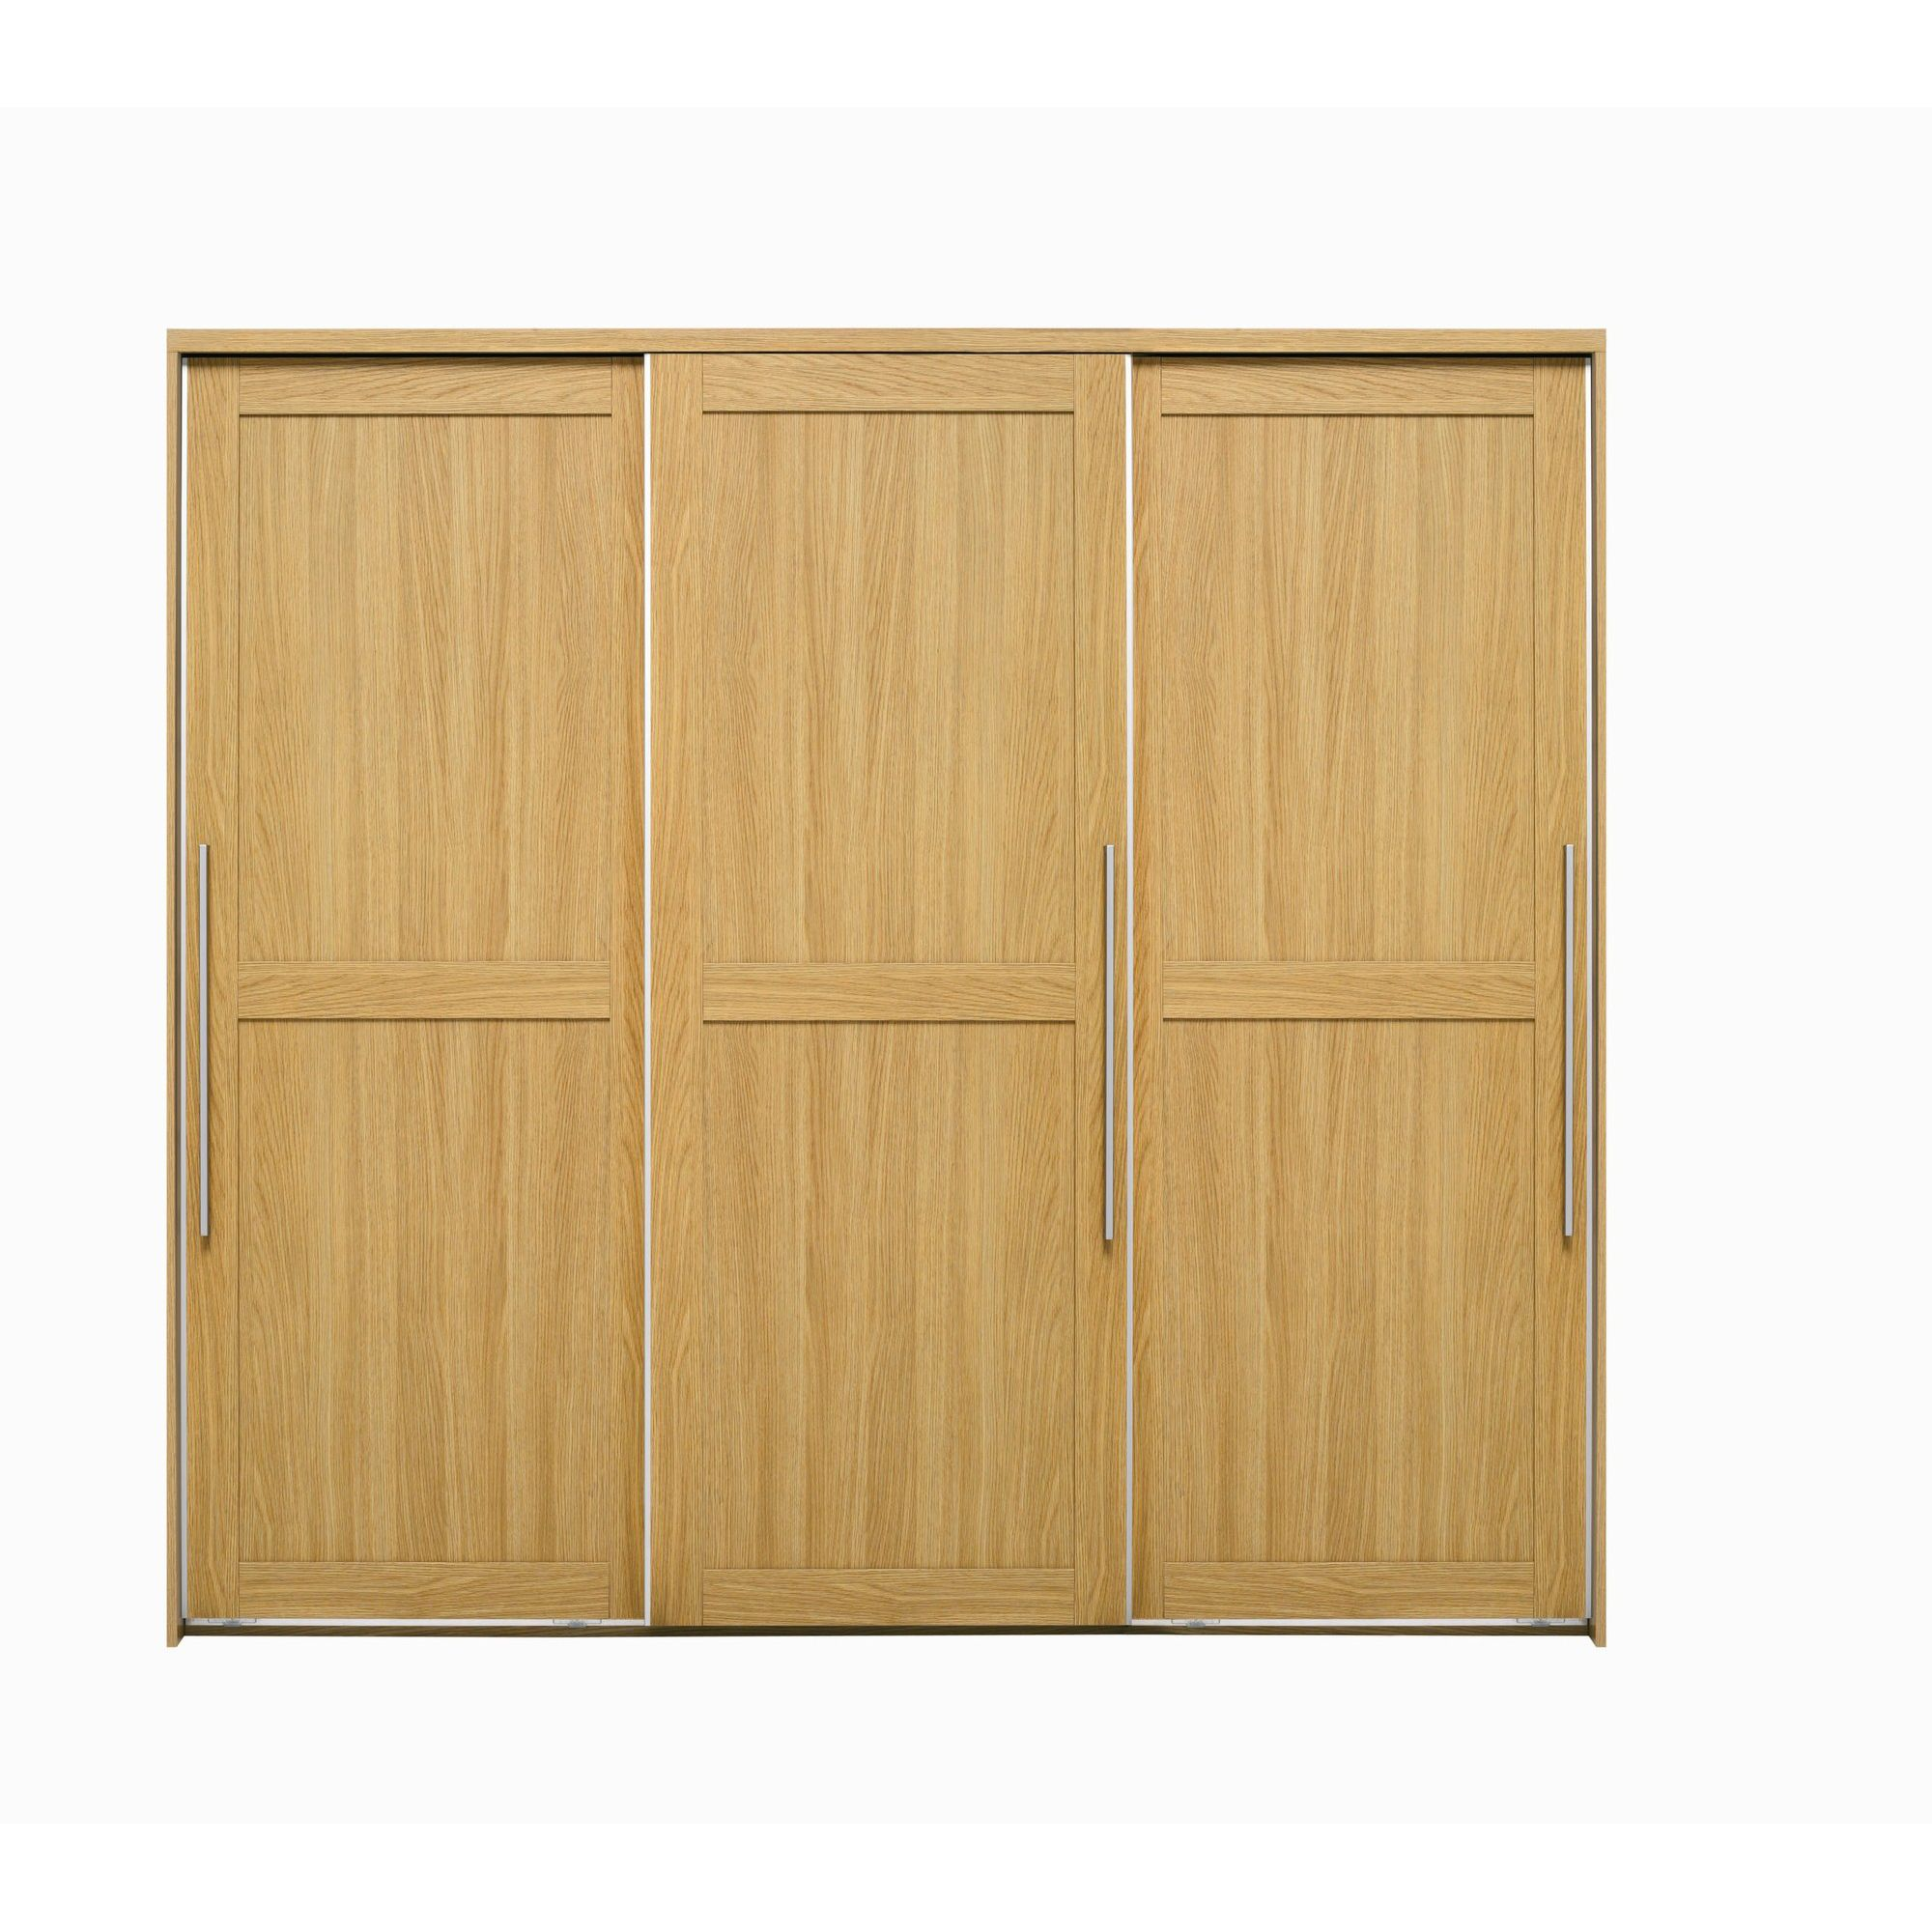 Caxton Melody 3 Door Sliding Wardrobe in Natural Oak at Tesco Direct